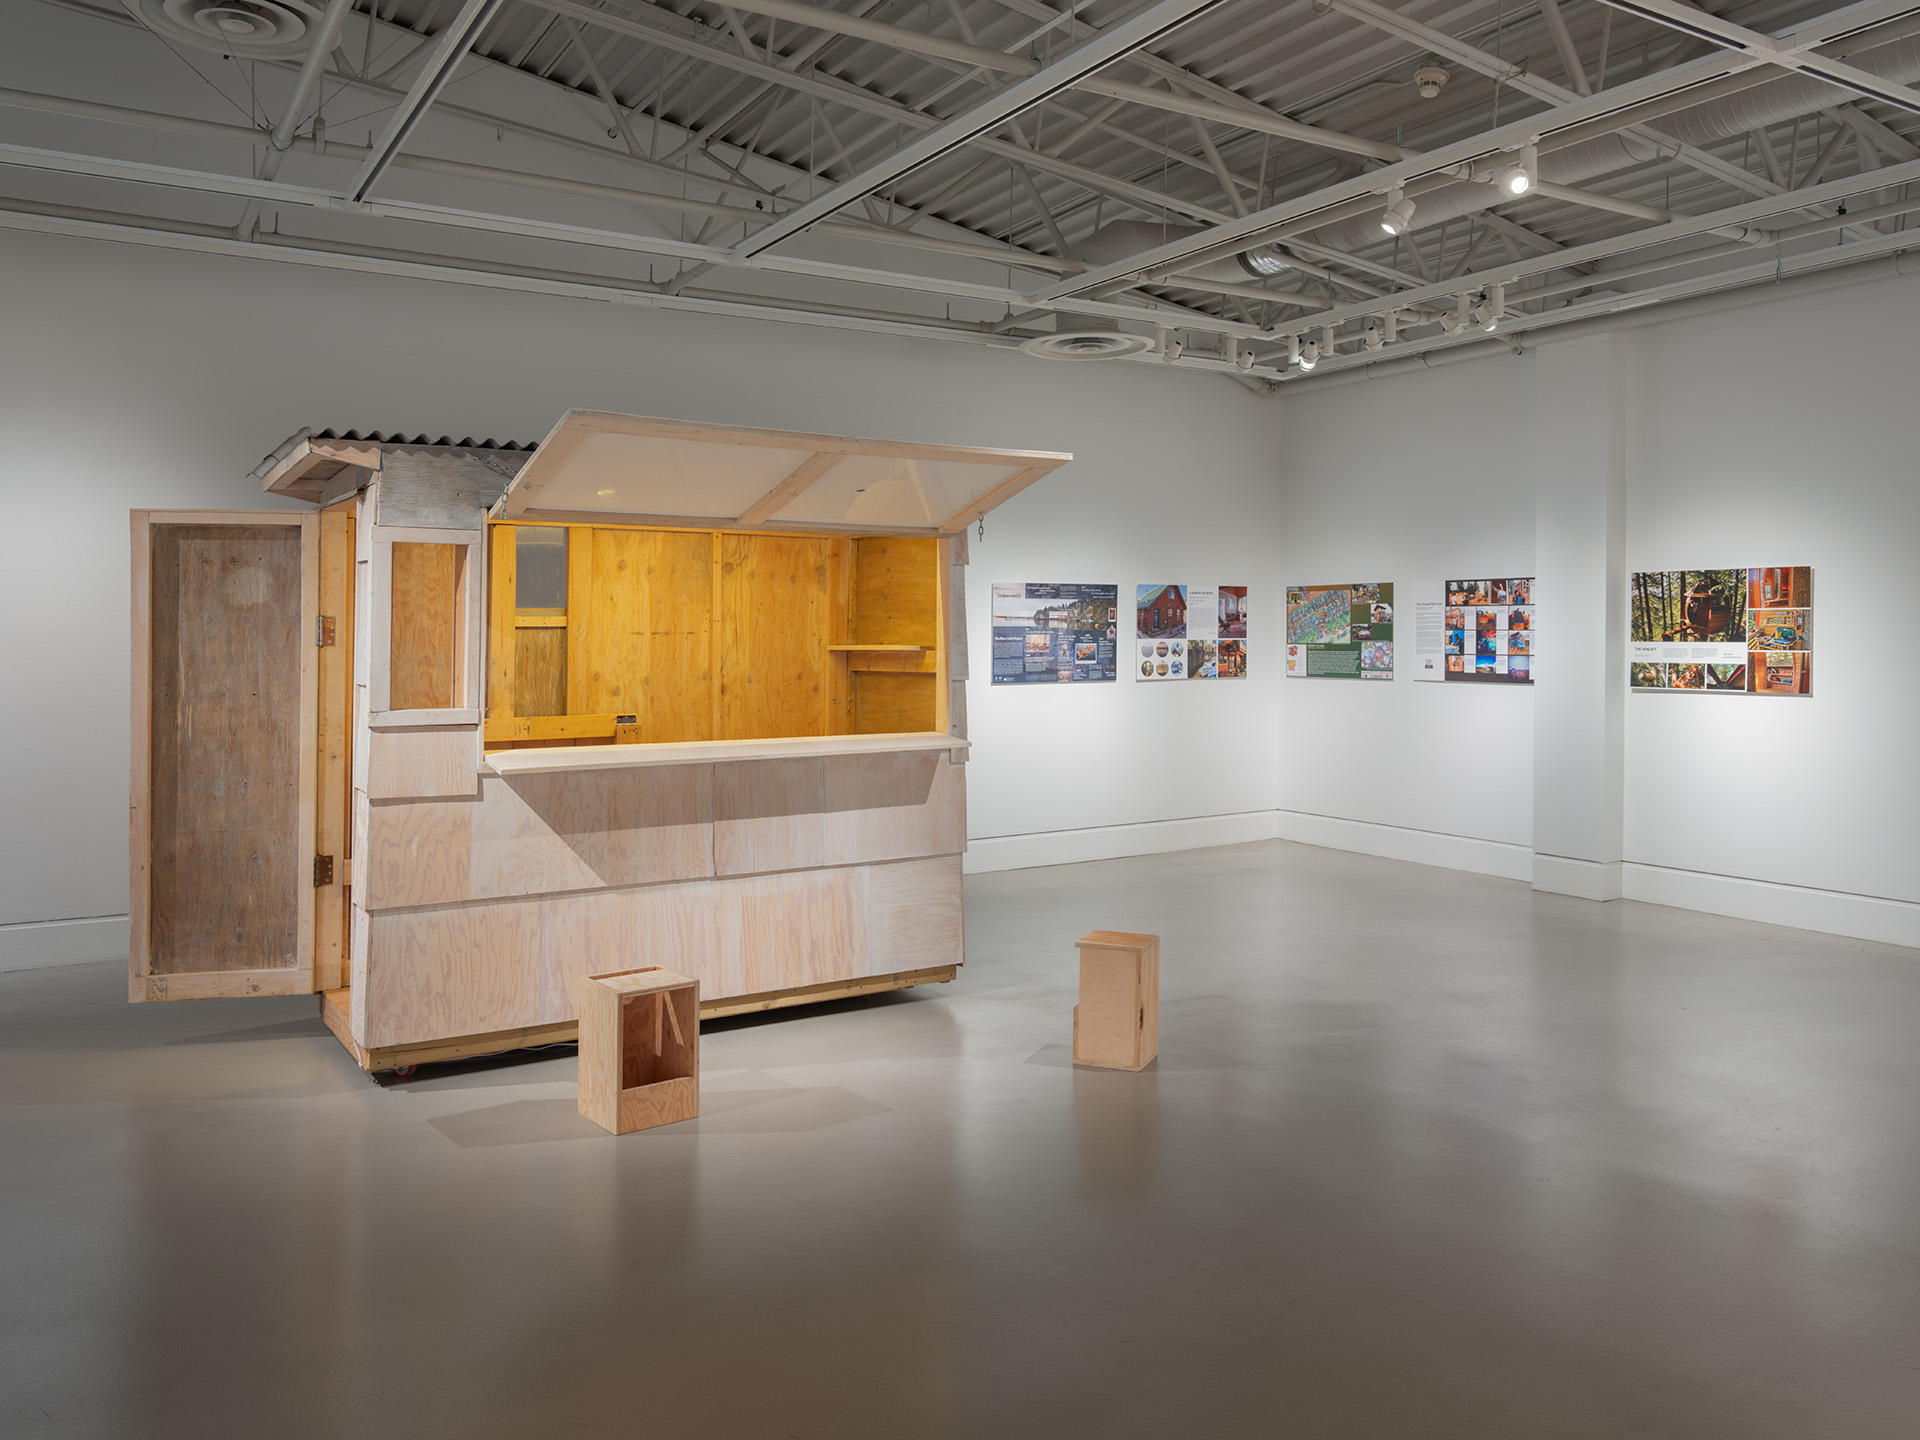 Photography Exhibition Installation View Of Germaine Koh Home Made Home Exhibition At